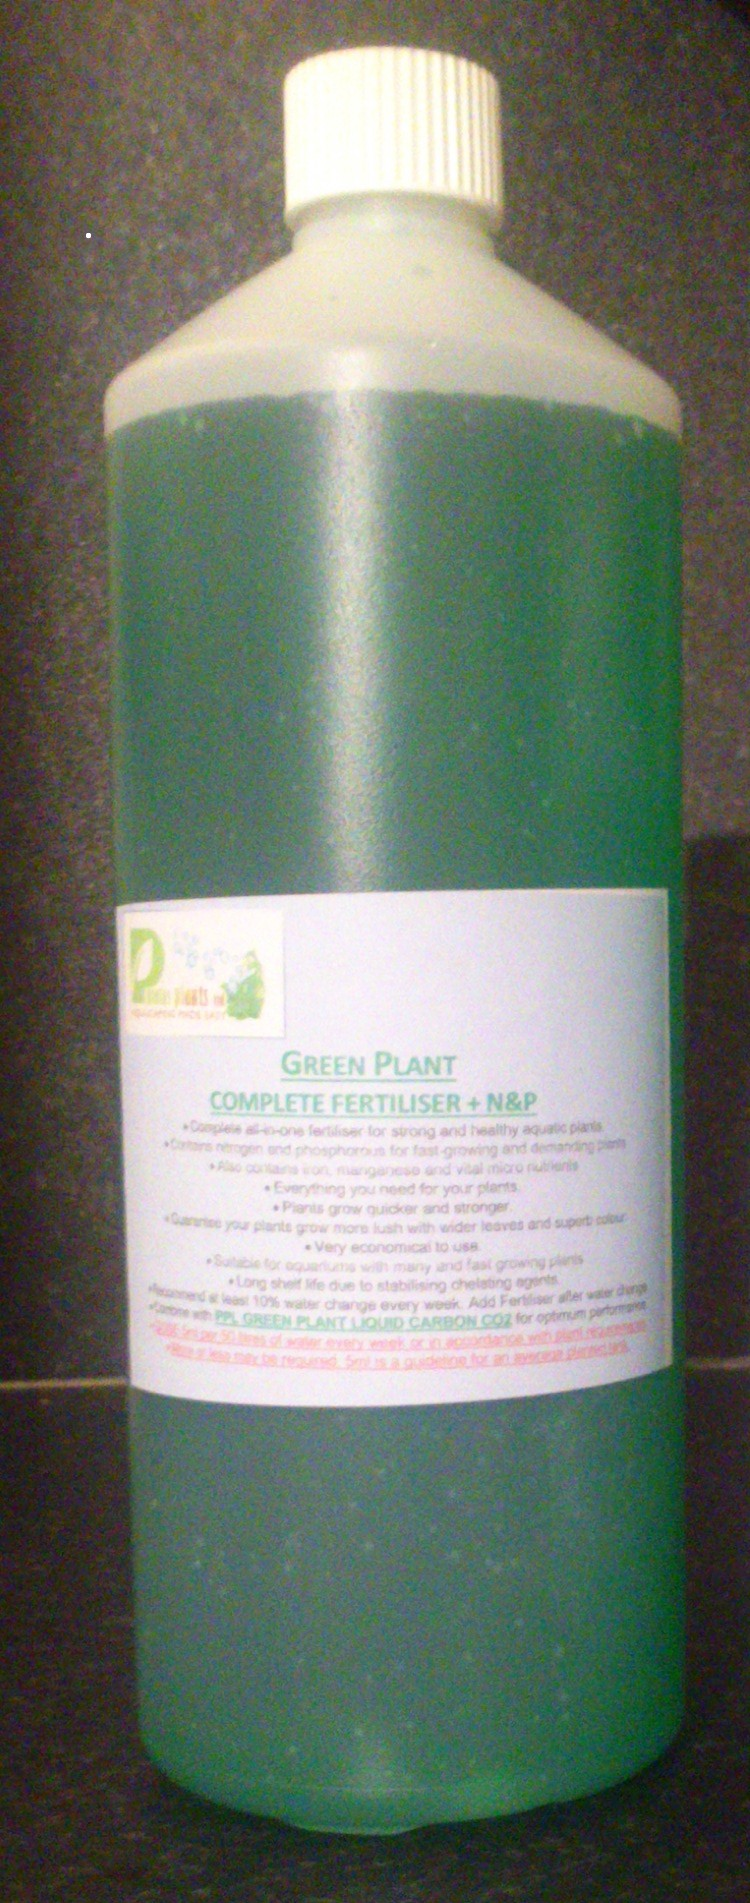 Paratus Plants Green Plant Complete Fertiliser + N&P